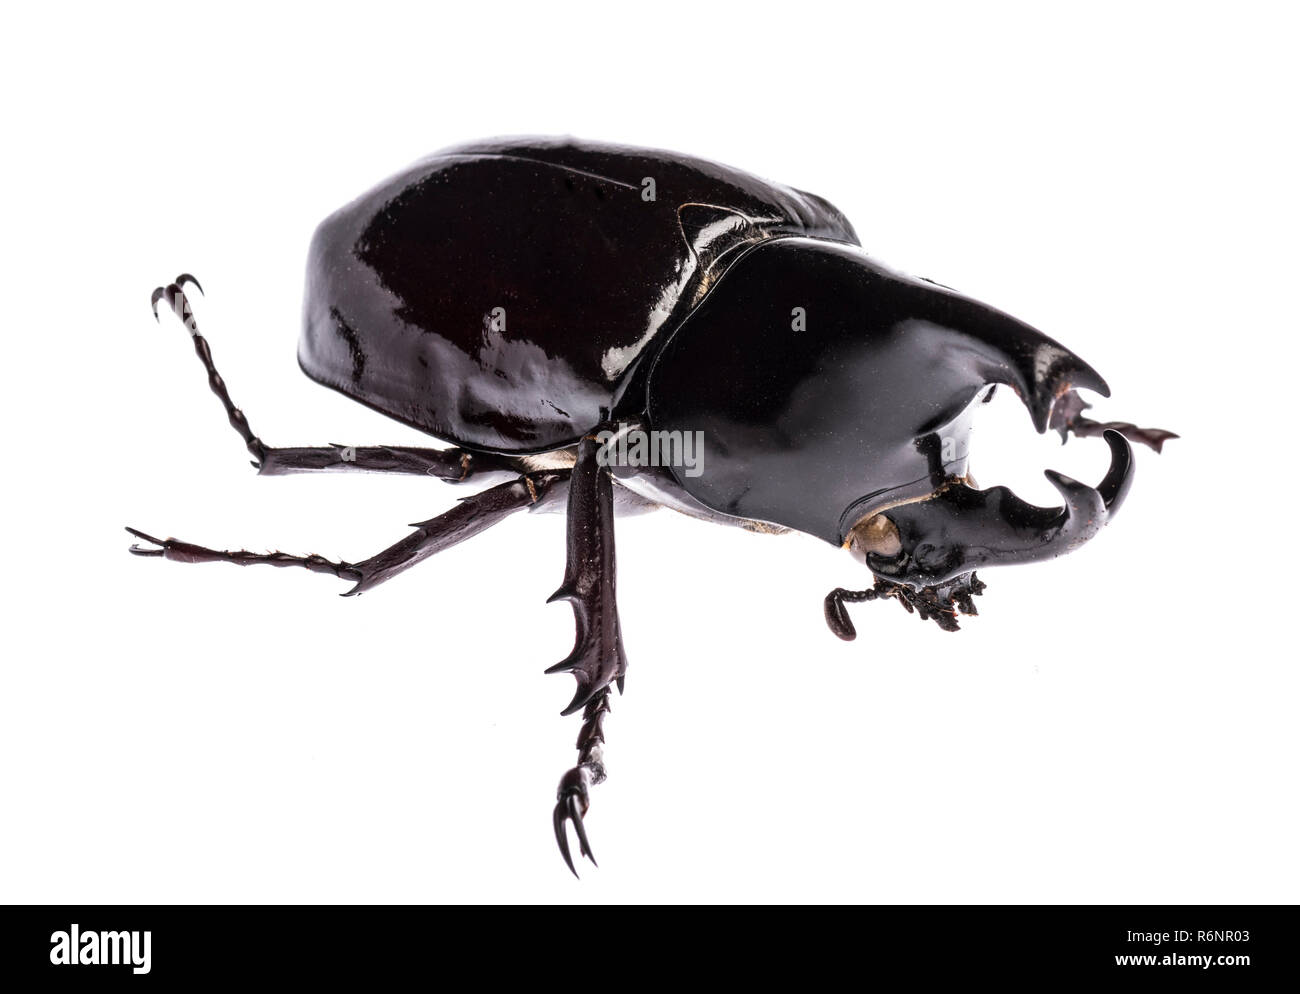 Rhinoceros beetle Xylotrupes gideon sumatrensis isolated - Stock Image